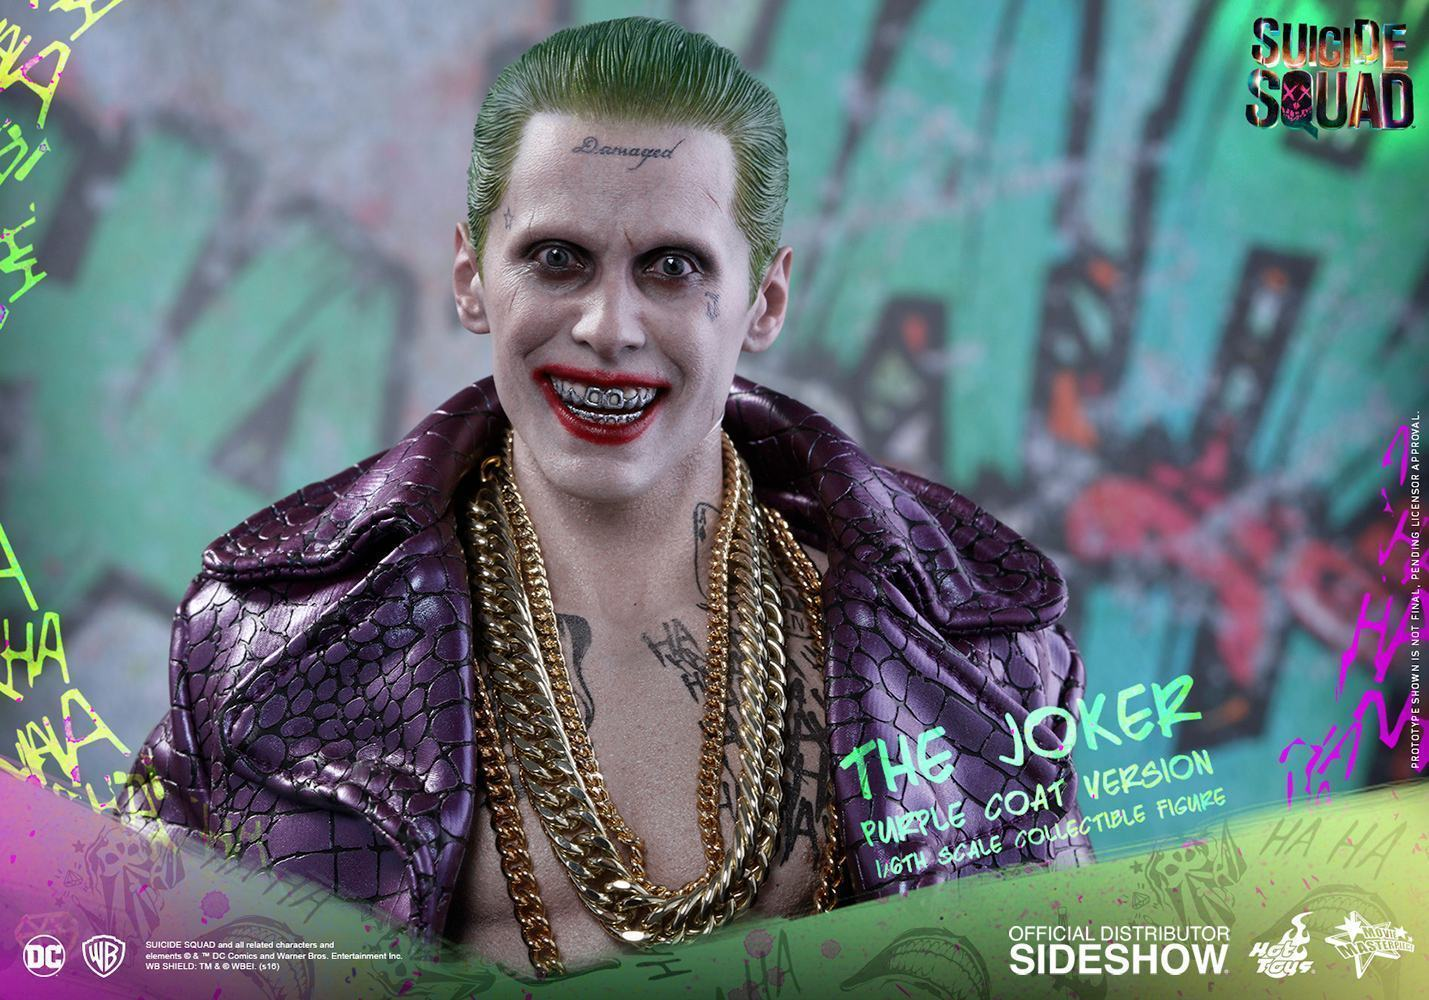 The-Joker-Purple-Coat-Ver-Suicide-Squad-Collectible-Figure-Hot-Toys-04